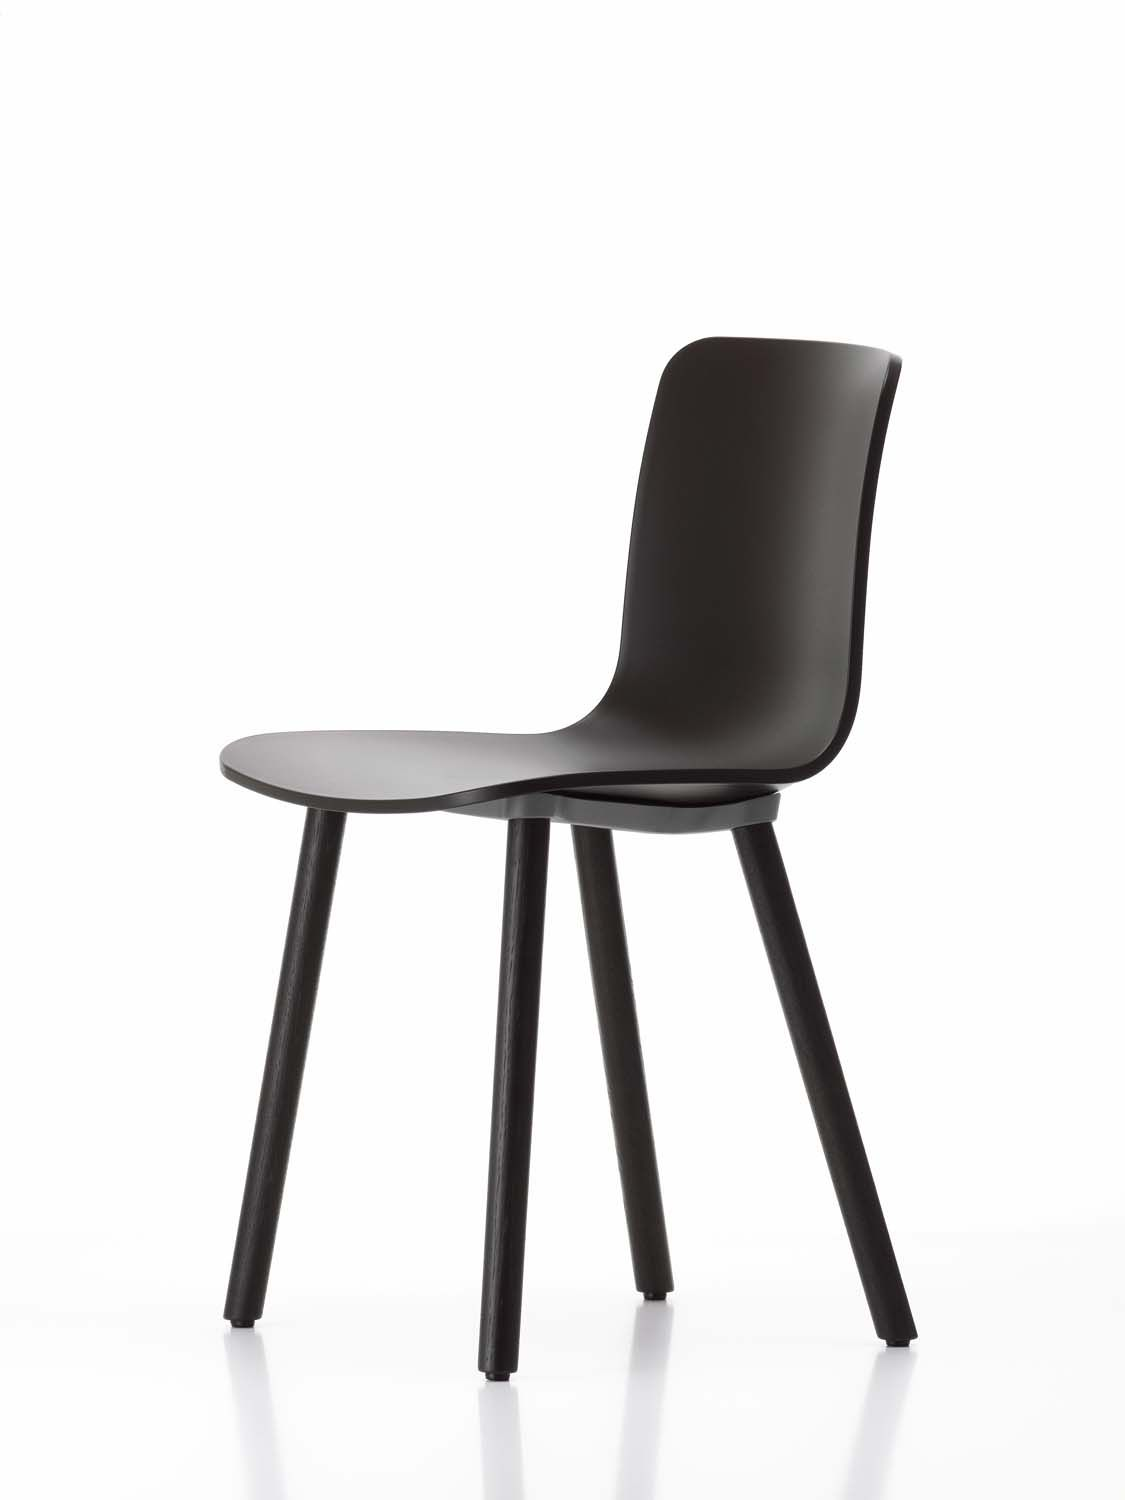 Vitra Hal Wood Stoel Vitra Hal Wood Chair Chairs Furniture Chair